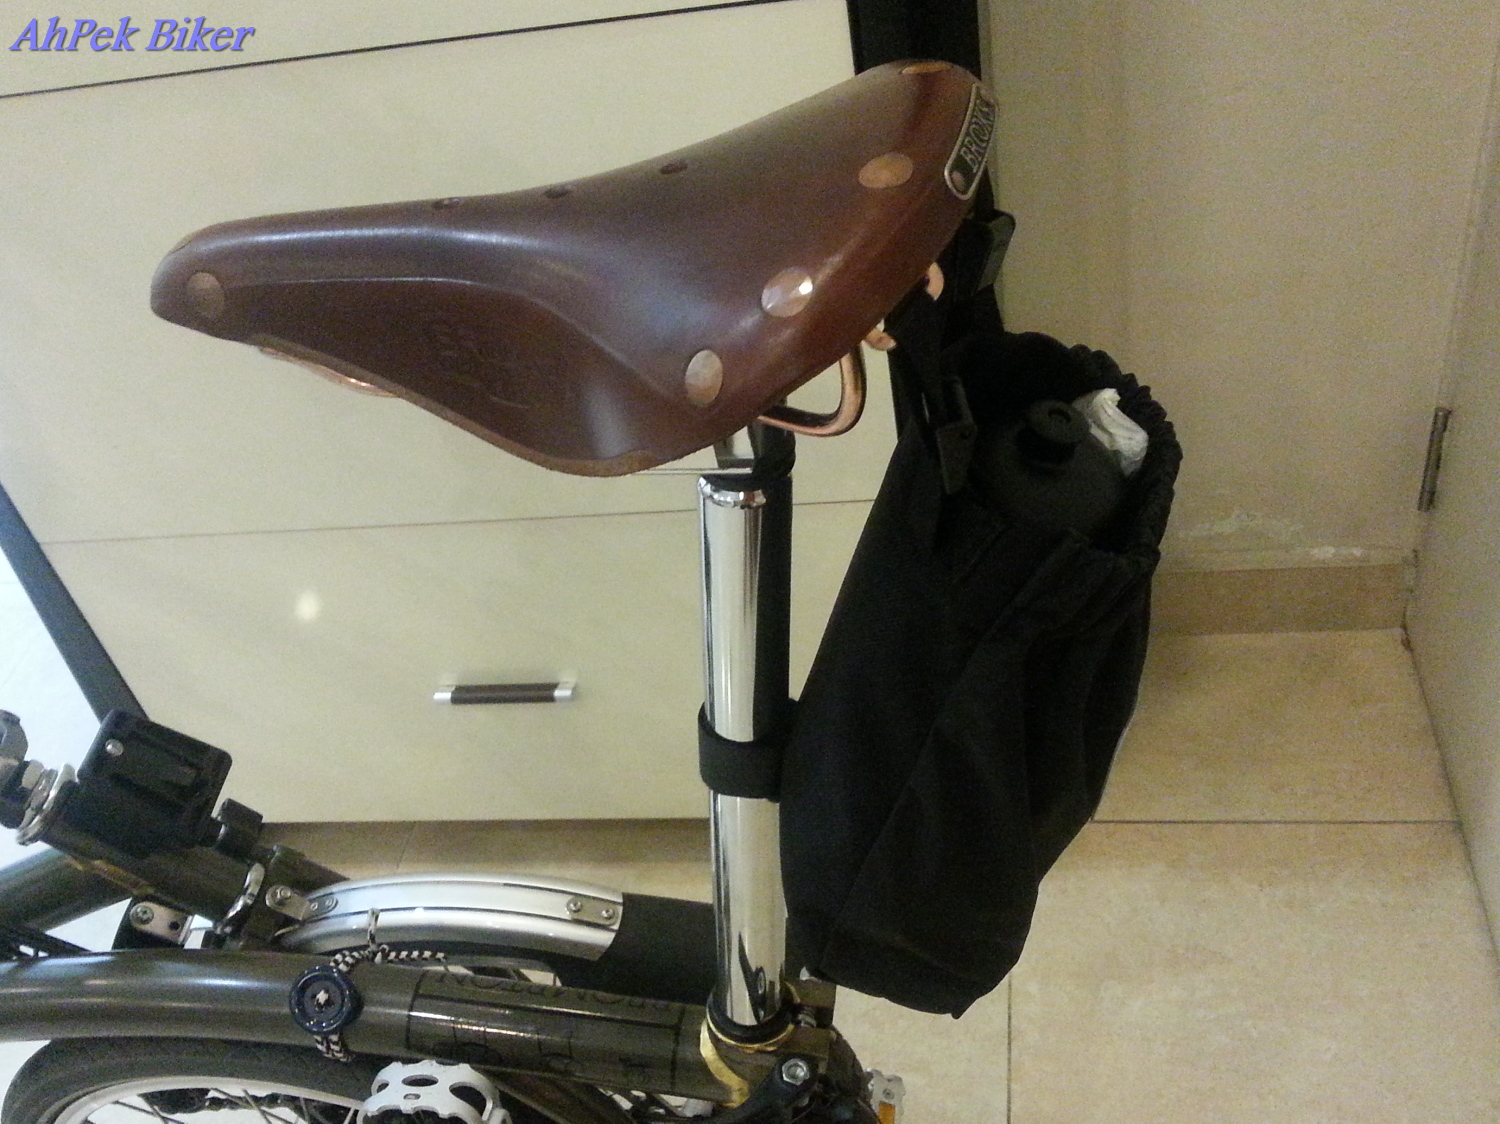 You Are At Jotaro S Blog Ahpek Biker Bikes Accessories Brompton 1 Modifying Saddle Bag Riding Adventures